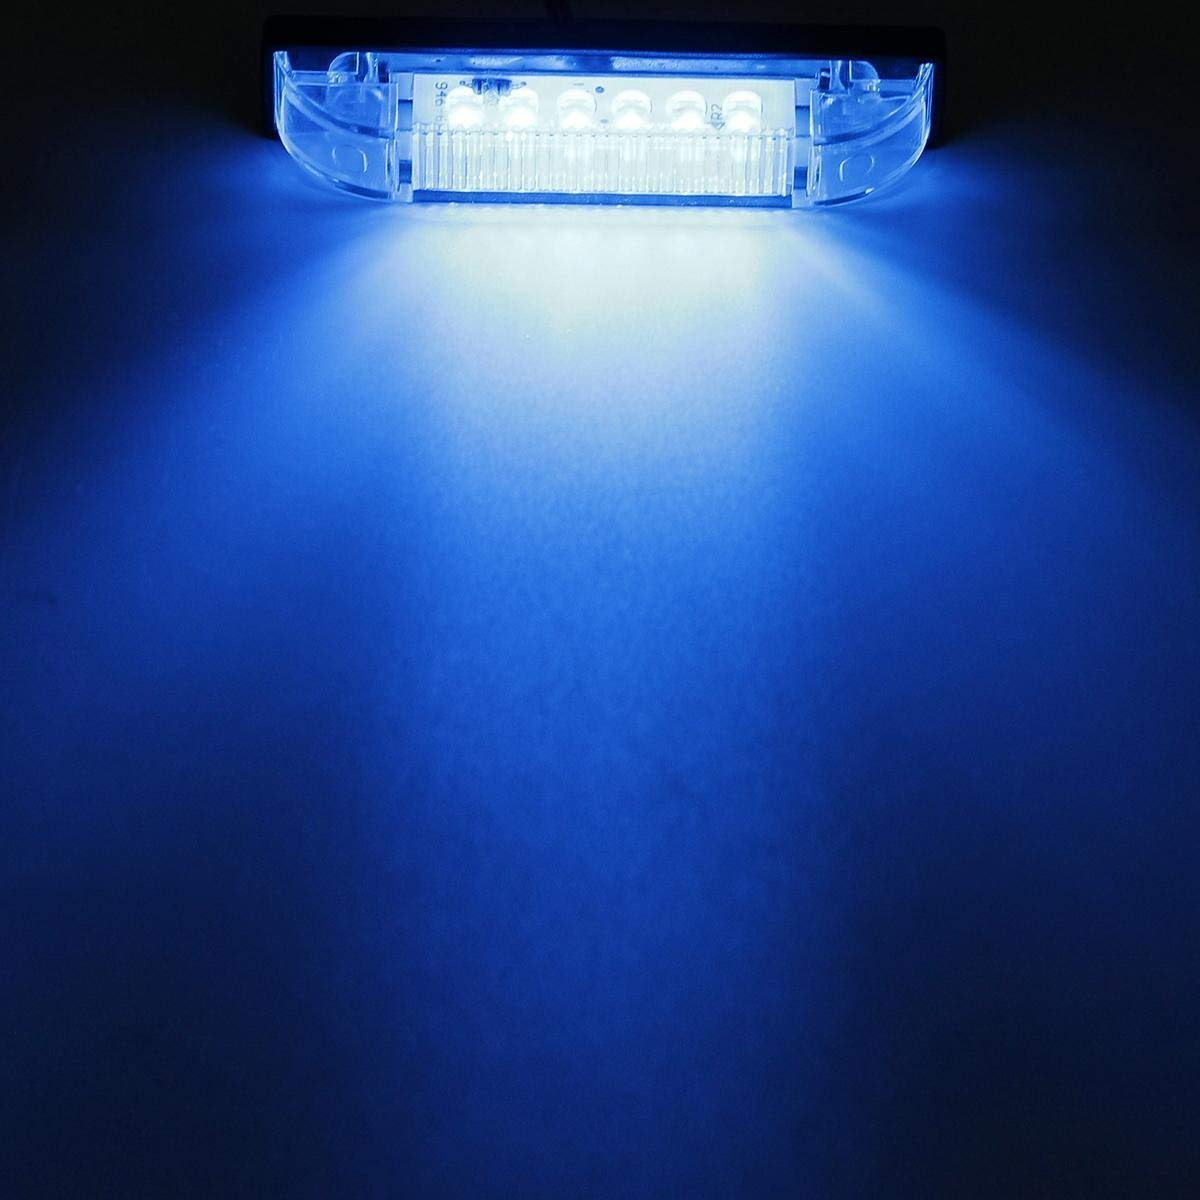 4Pcs 6 Inch Led Utility Strip Light Sealed Waterproof 12 Diodes Clear//Blue Underwater Led Bar Marker Clearance Light for RV Boat Marine Trailer